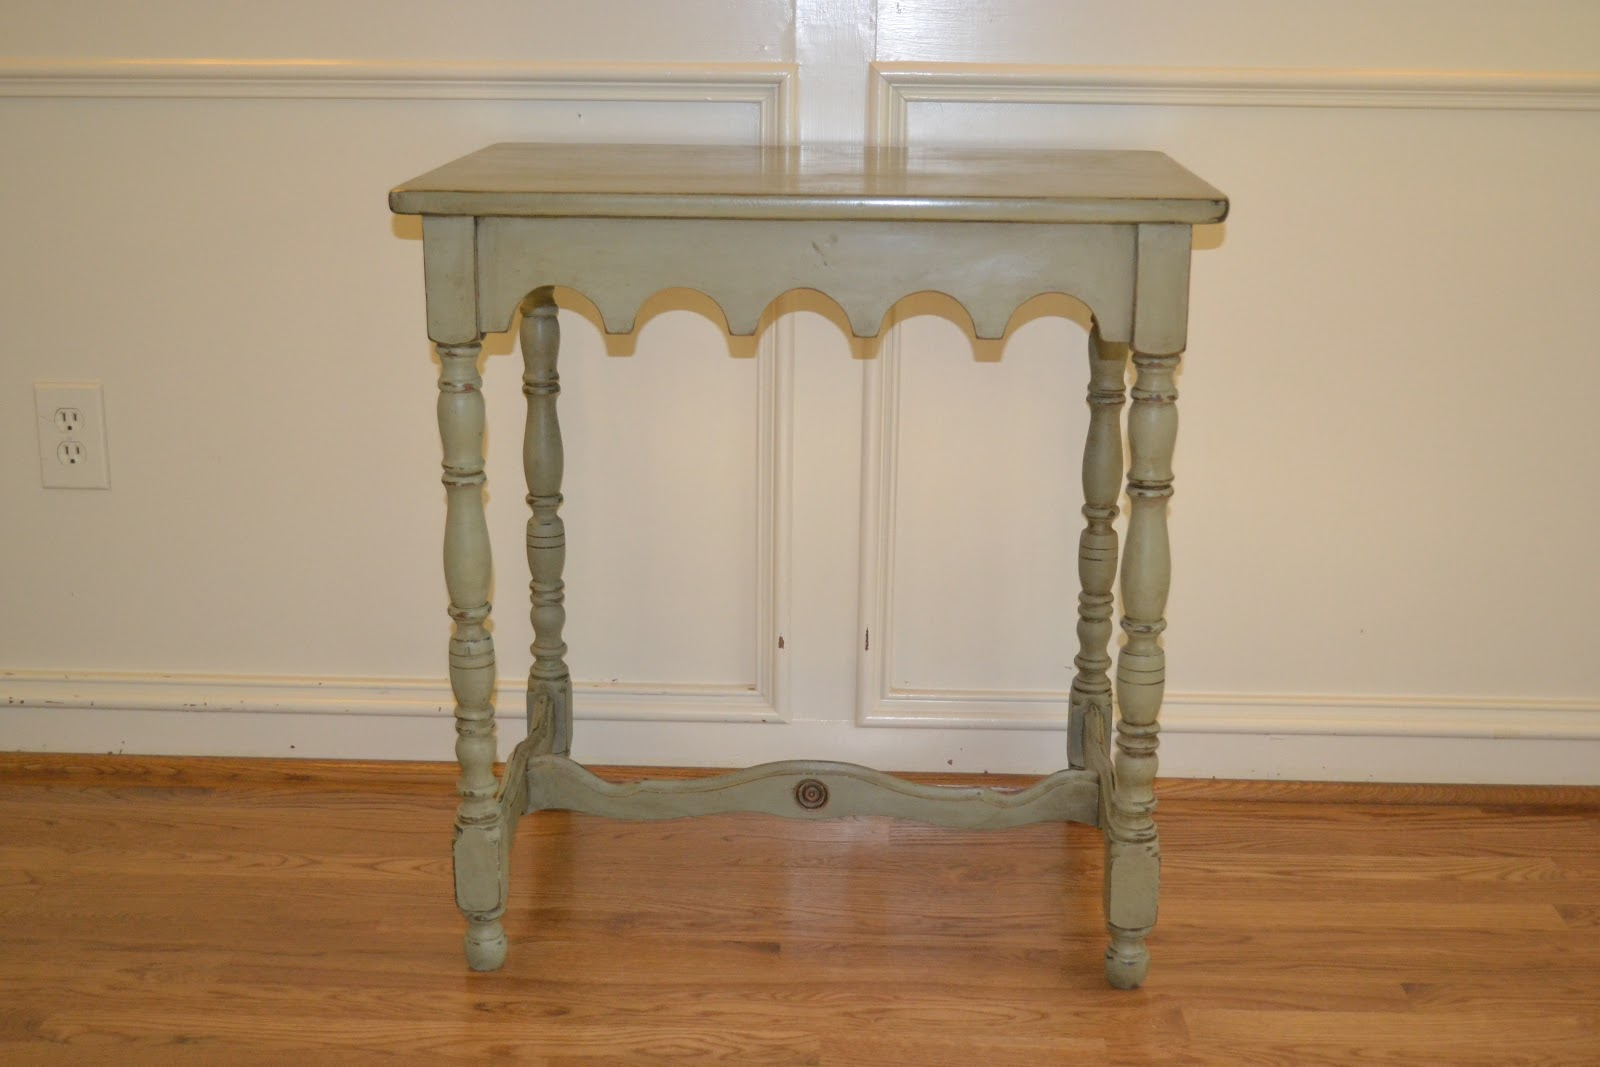 4decor check out my latest custom painted furniture i French country furniture